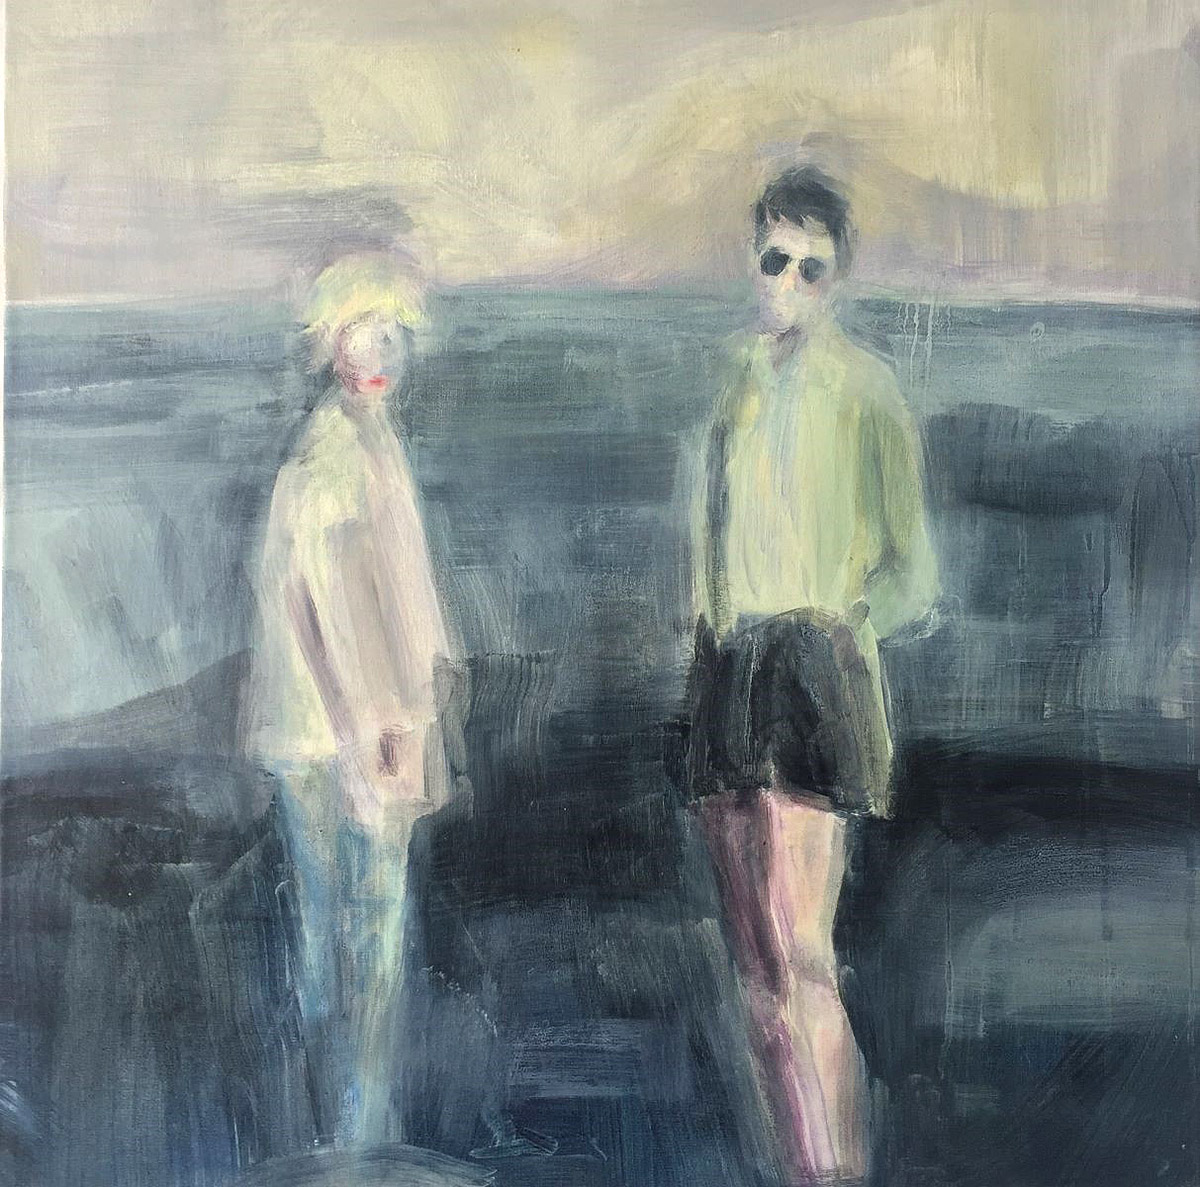 Louise Todd, 'Sunglasses for Refection', oil on canvas